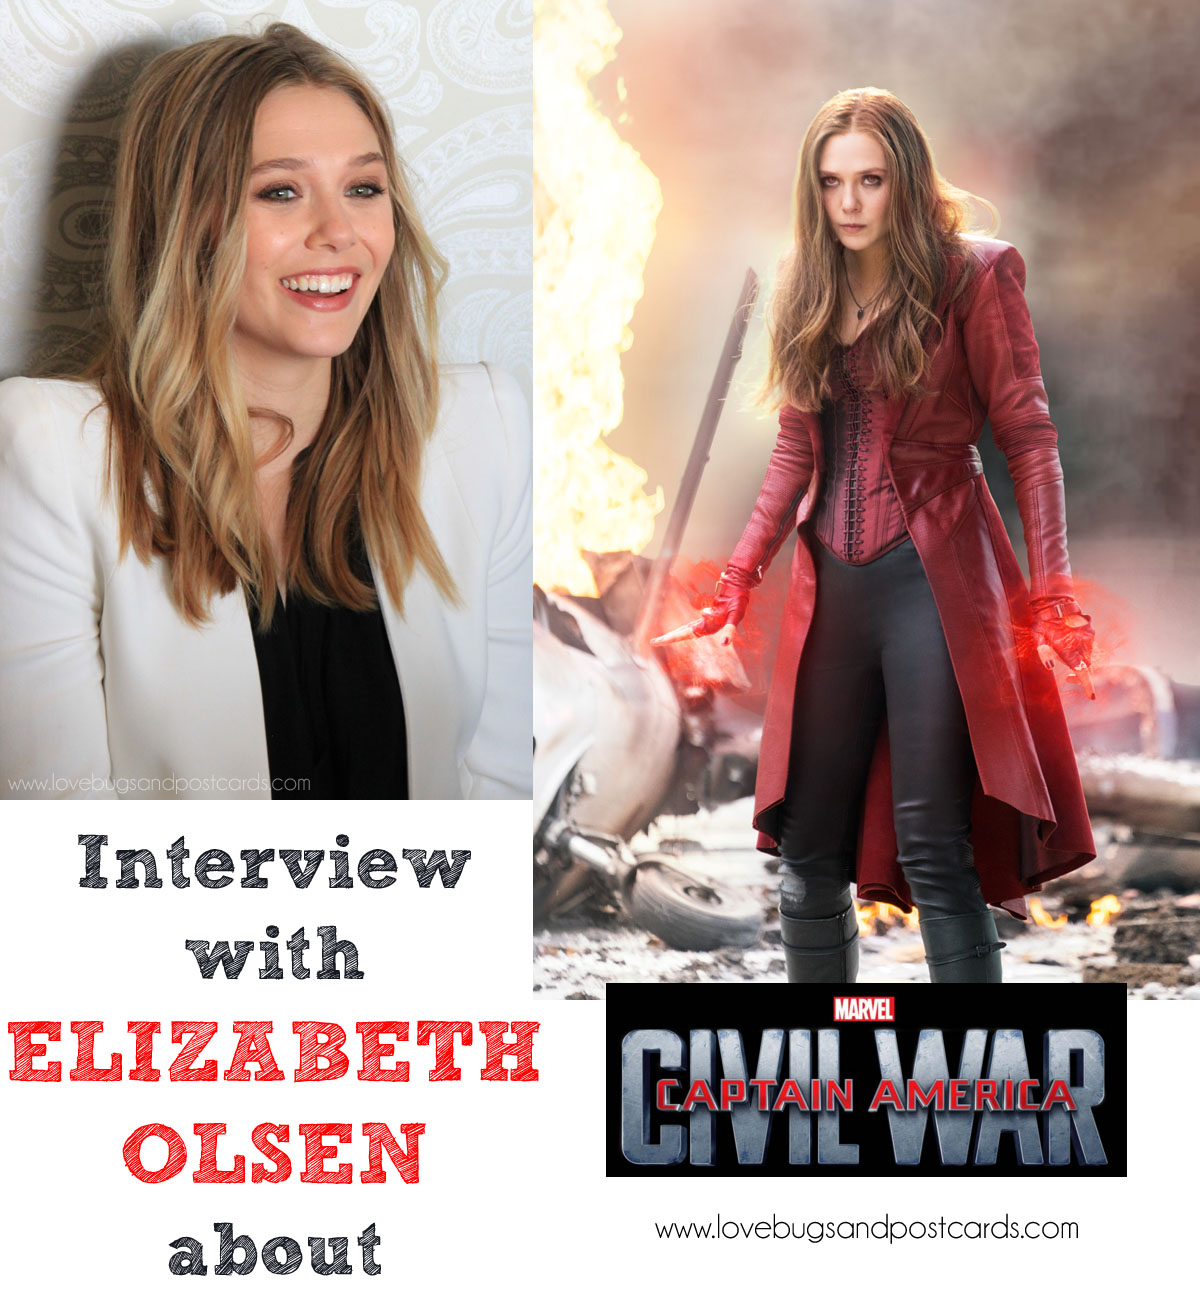 Interview with Jeremy Renner & Elizabeth Olsen #CaptainAmericaCivilWar #CaptainAmericaEvent